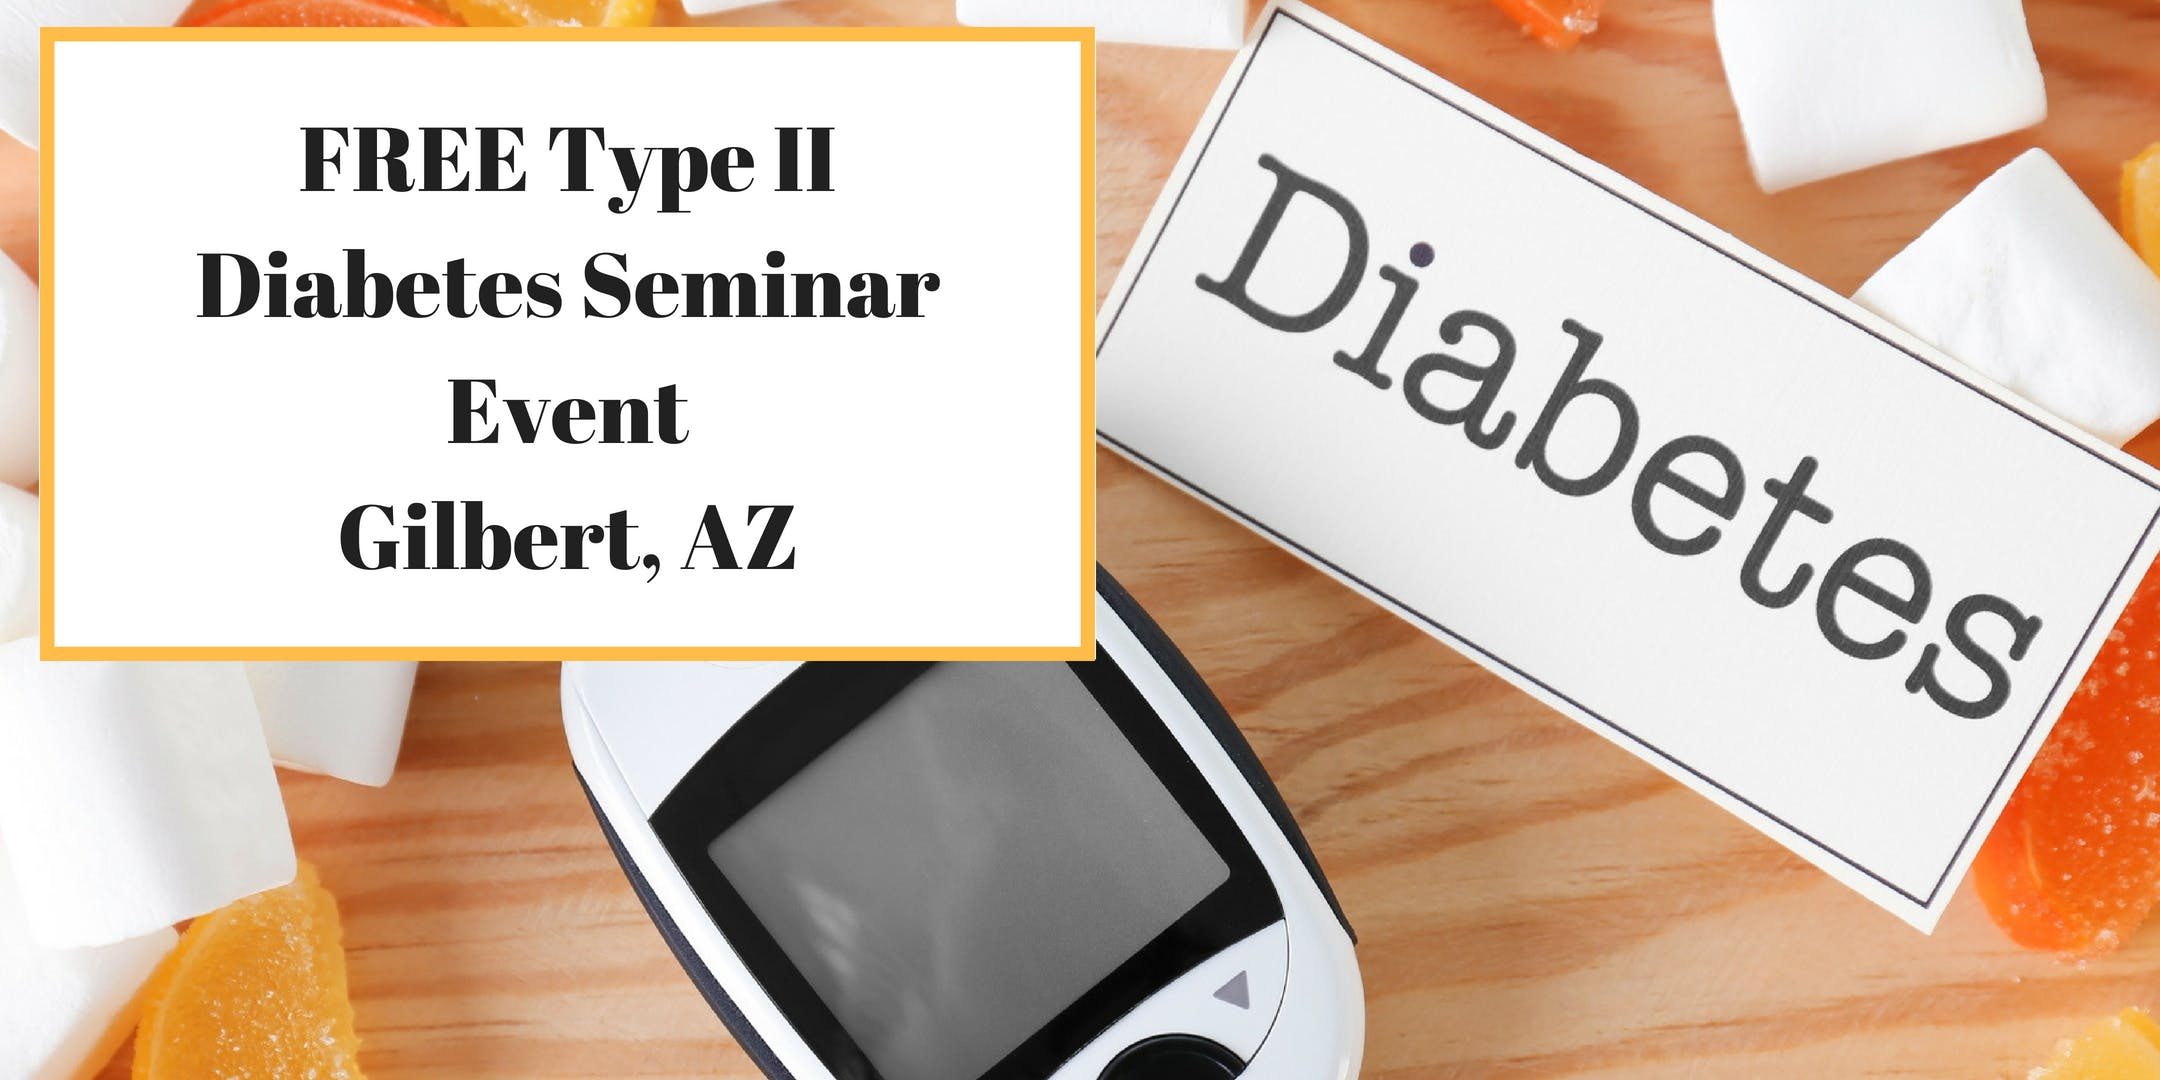 FREE Type II Diabetes Seminar Event -